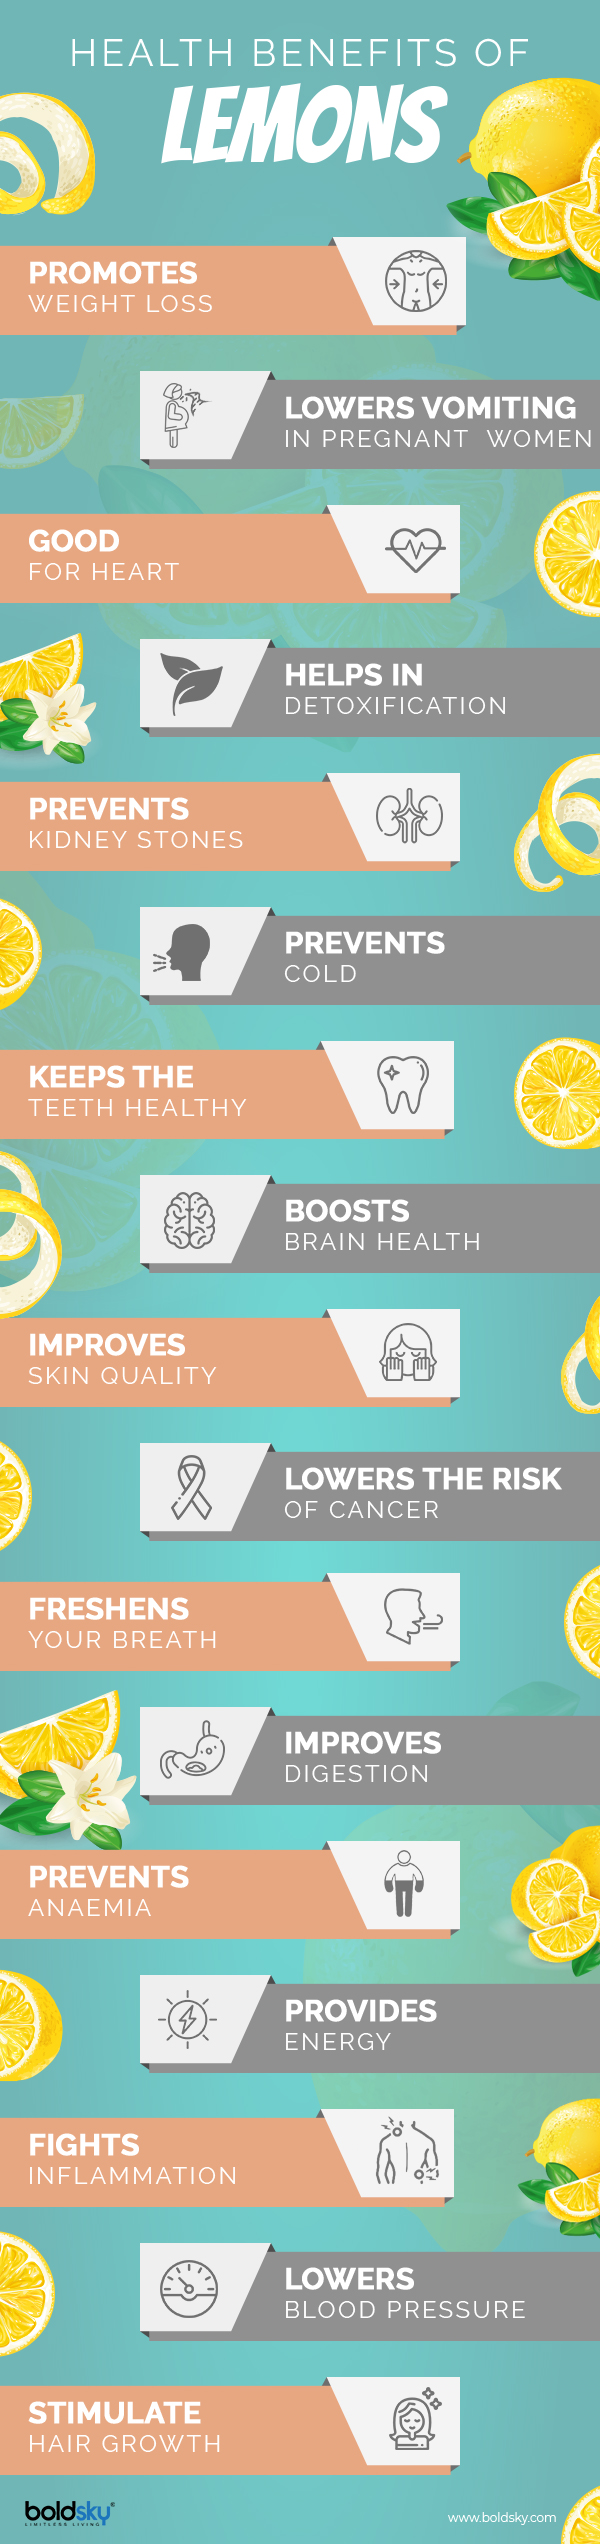 Health benefits of lemons - infographic